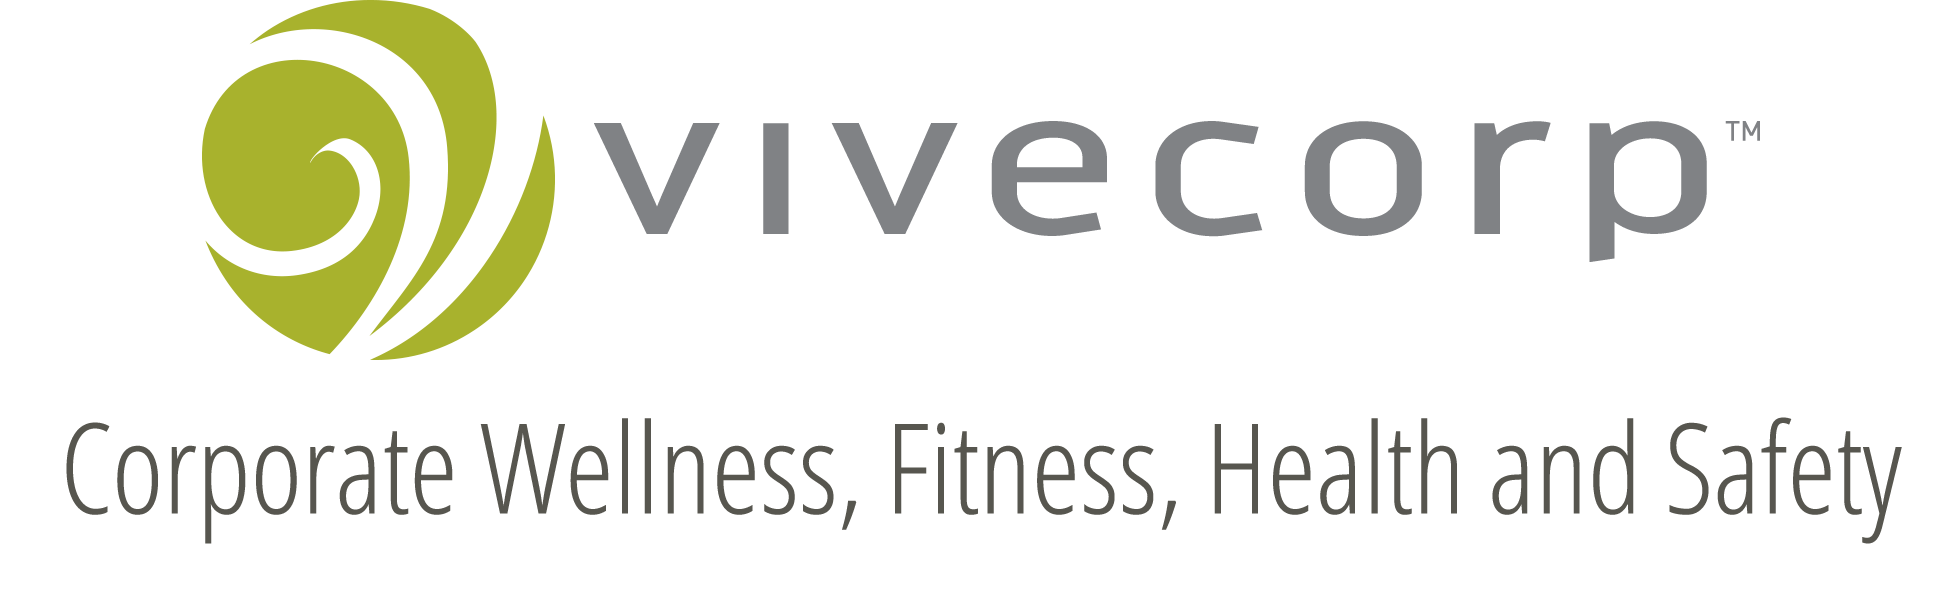 VivecorpFullLogo_gray+gray_WithCopy-3